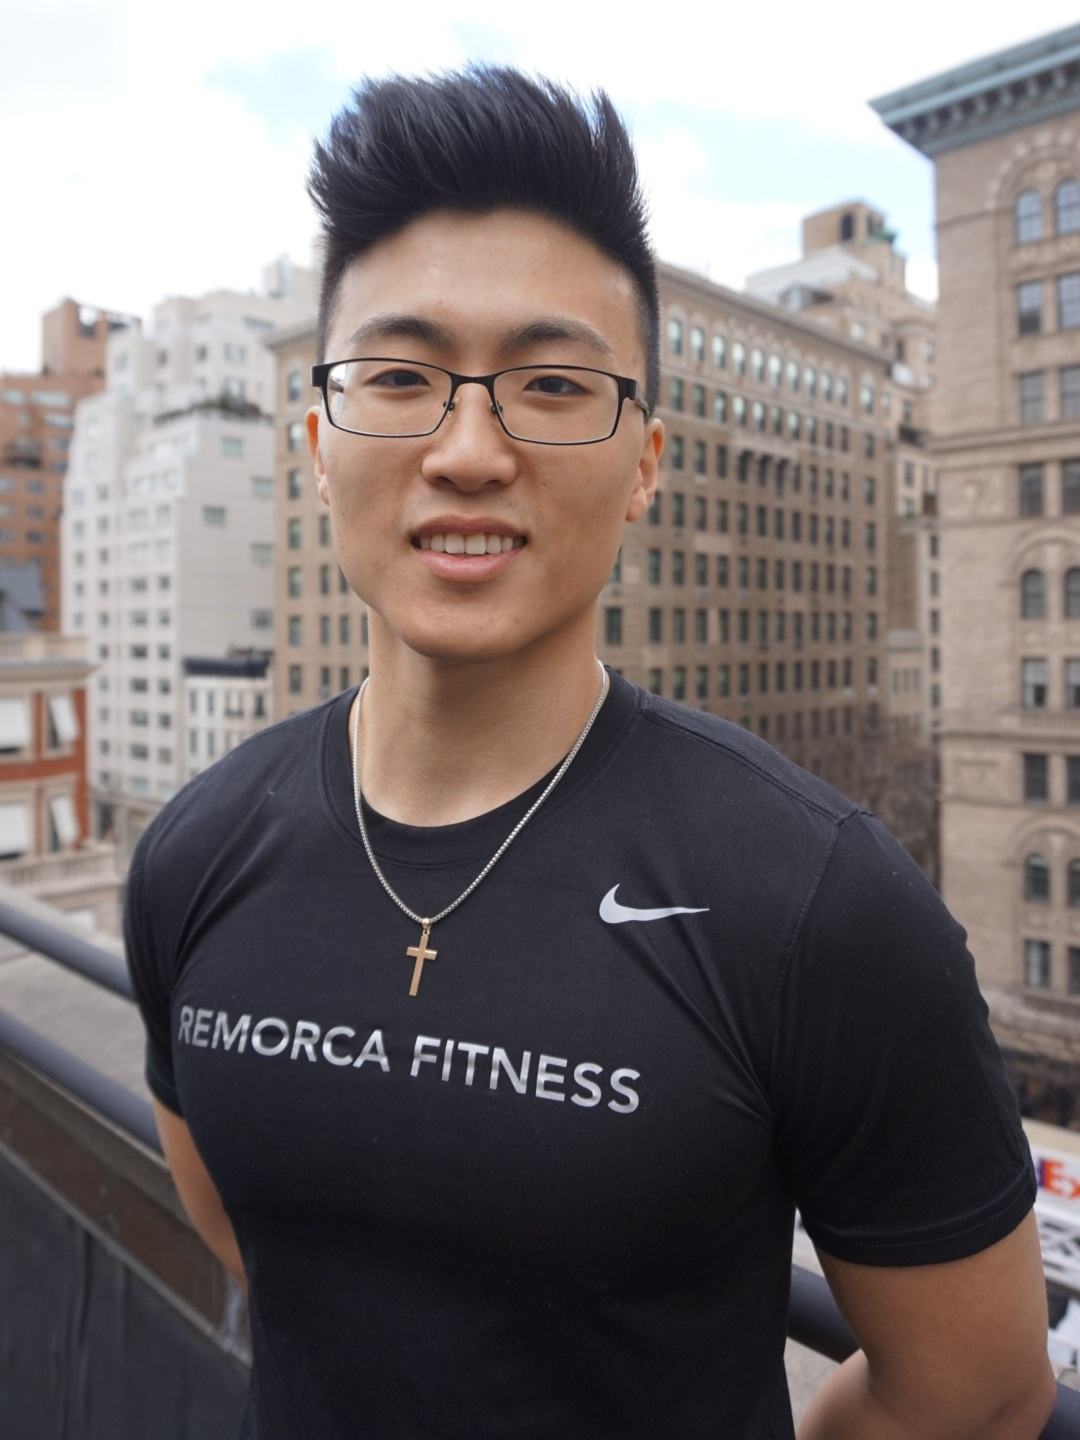 JOSH - PERSONAL TRAINER AT REMORCA FITNESS MIDTOWNCERTIFICATIONS:EDUCATION:SPECIALTY/EXPERTISE:FITNESS HOBBIES:NON FITNESS THING ABOUT ME